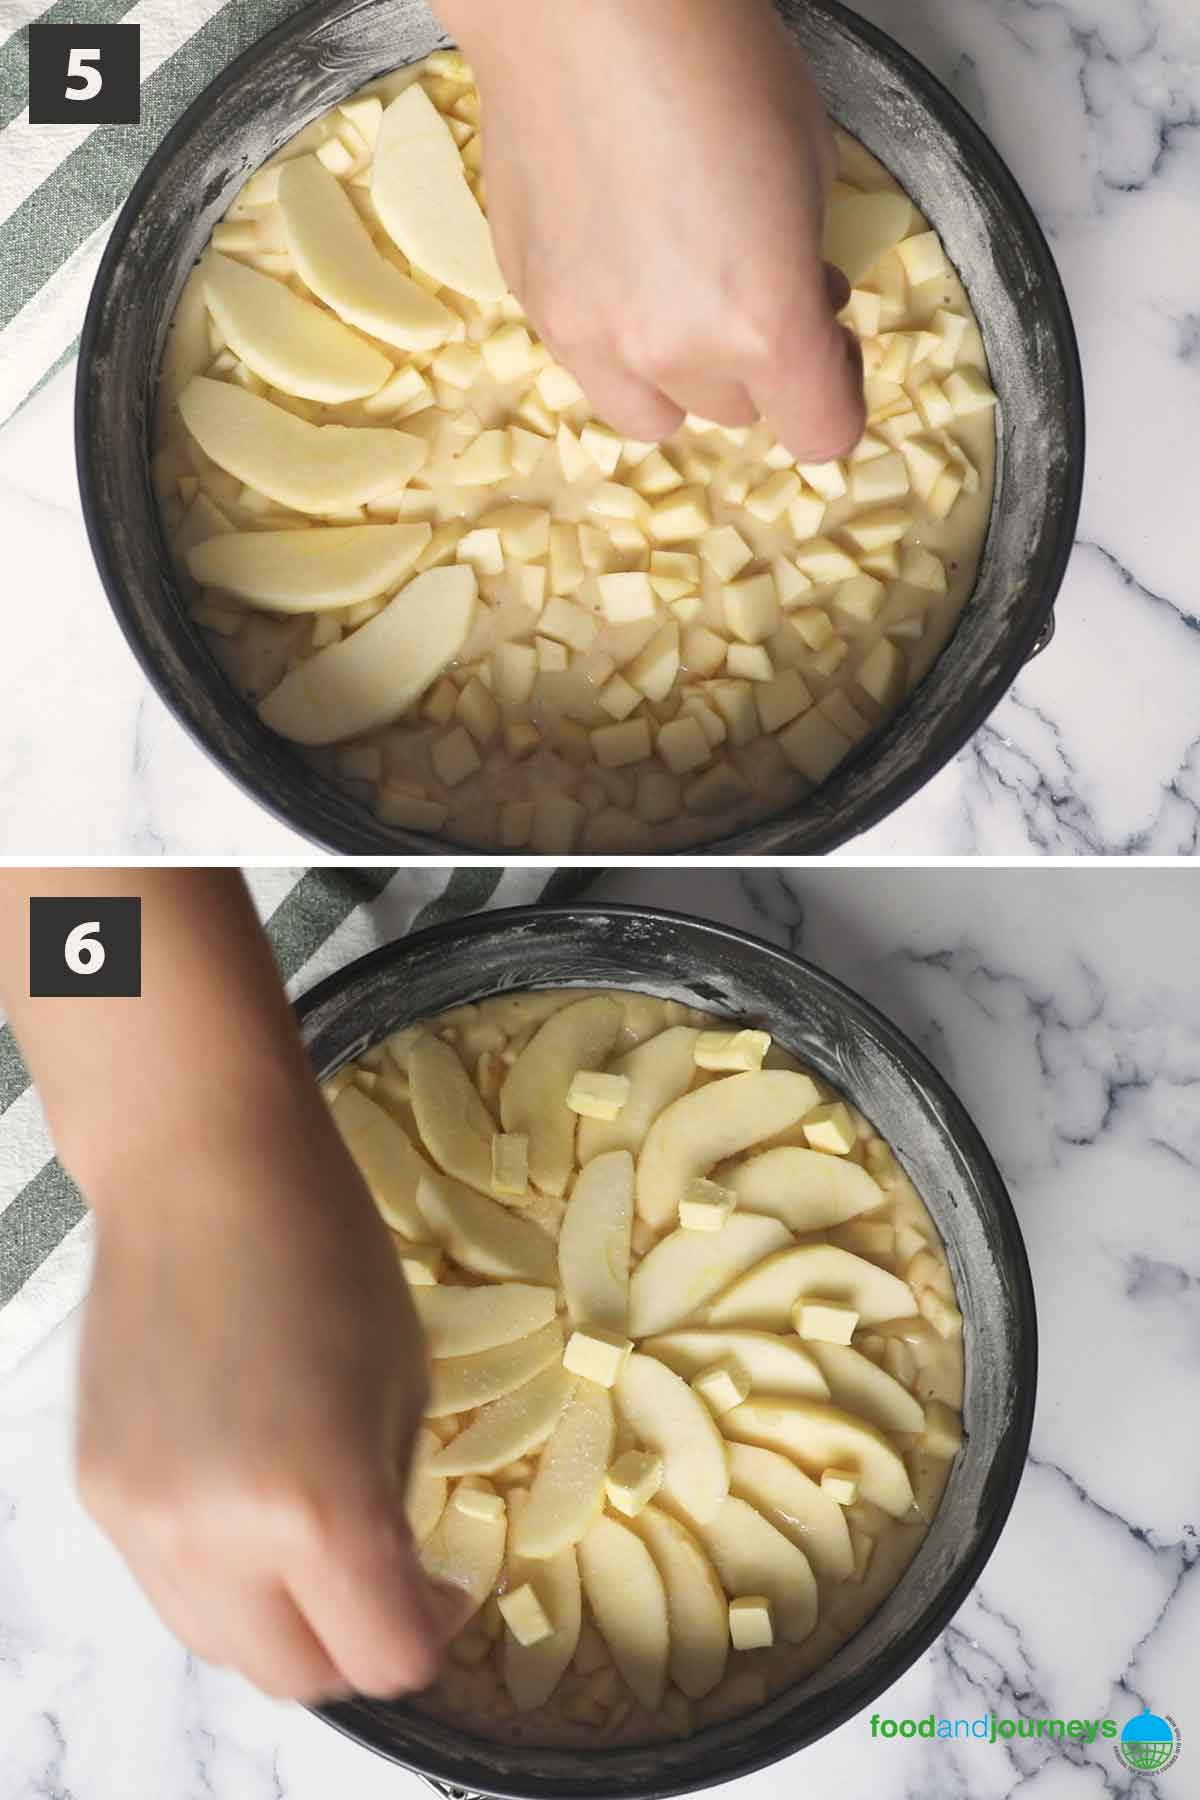 Updated second part of a collage of images showing the step by step process on how to make Tuscan apple cake.